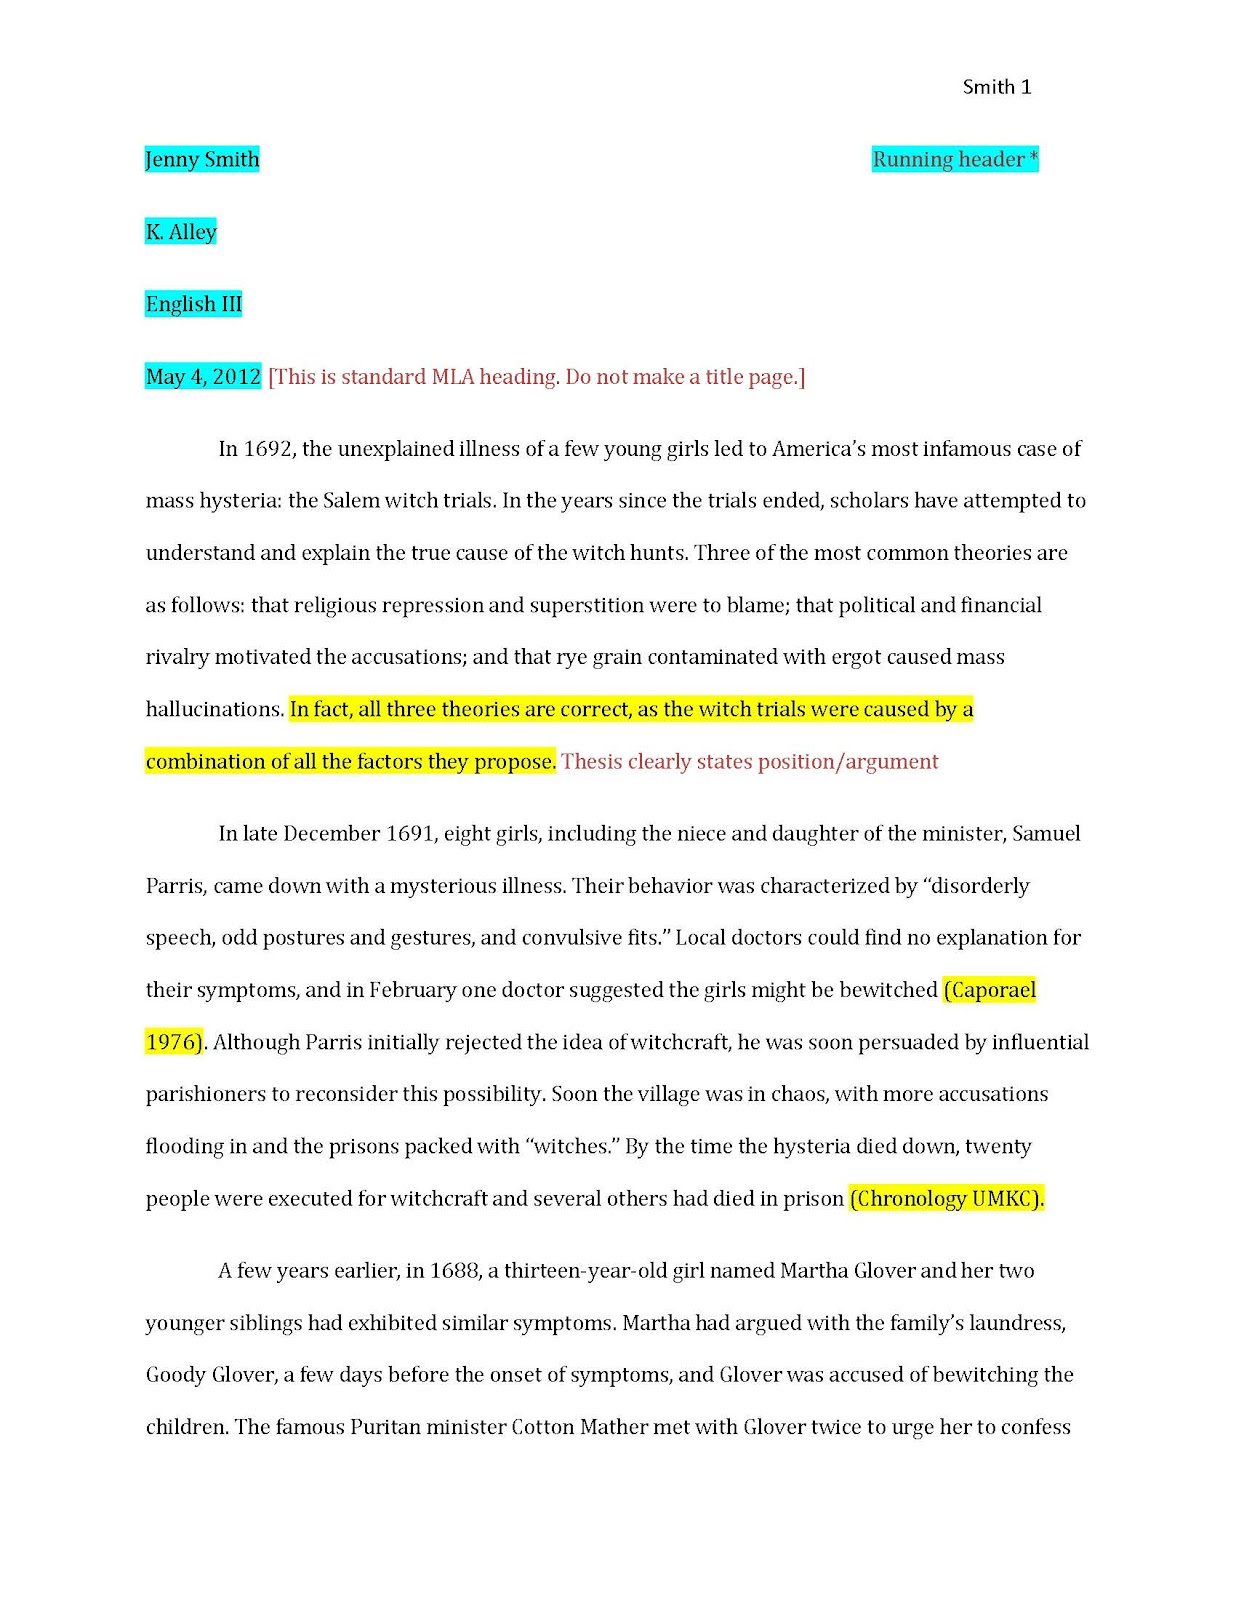 002 Citation Research Papers Paper Examplepaper Page 1 Incredible Chicago Style Sample Apa Online Full